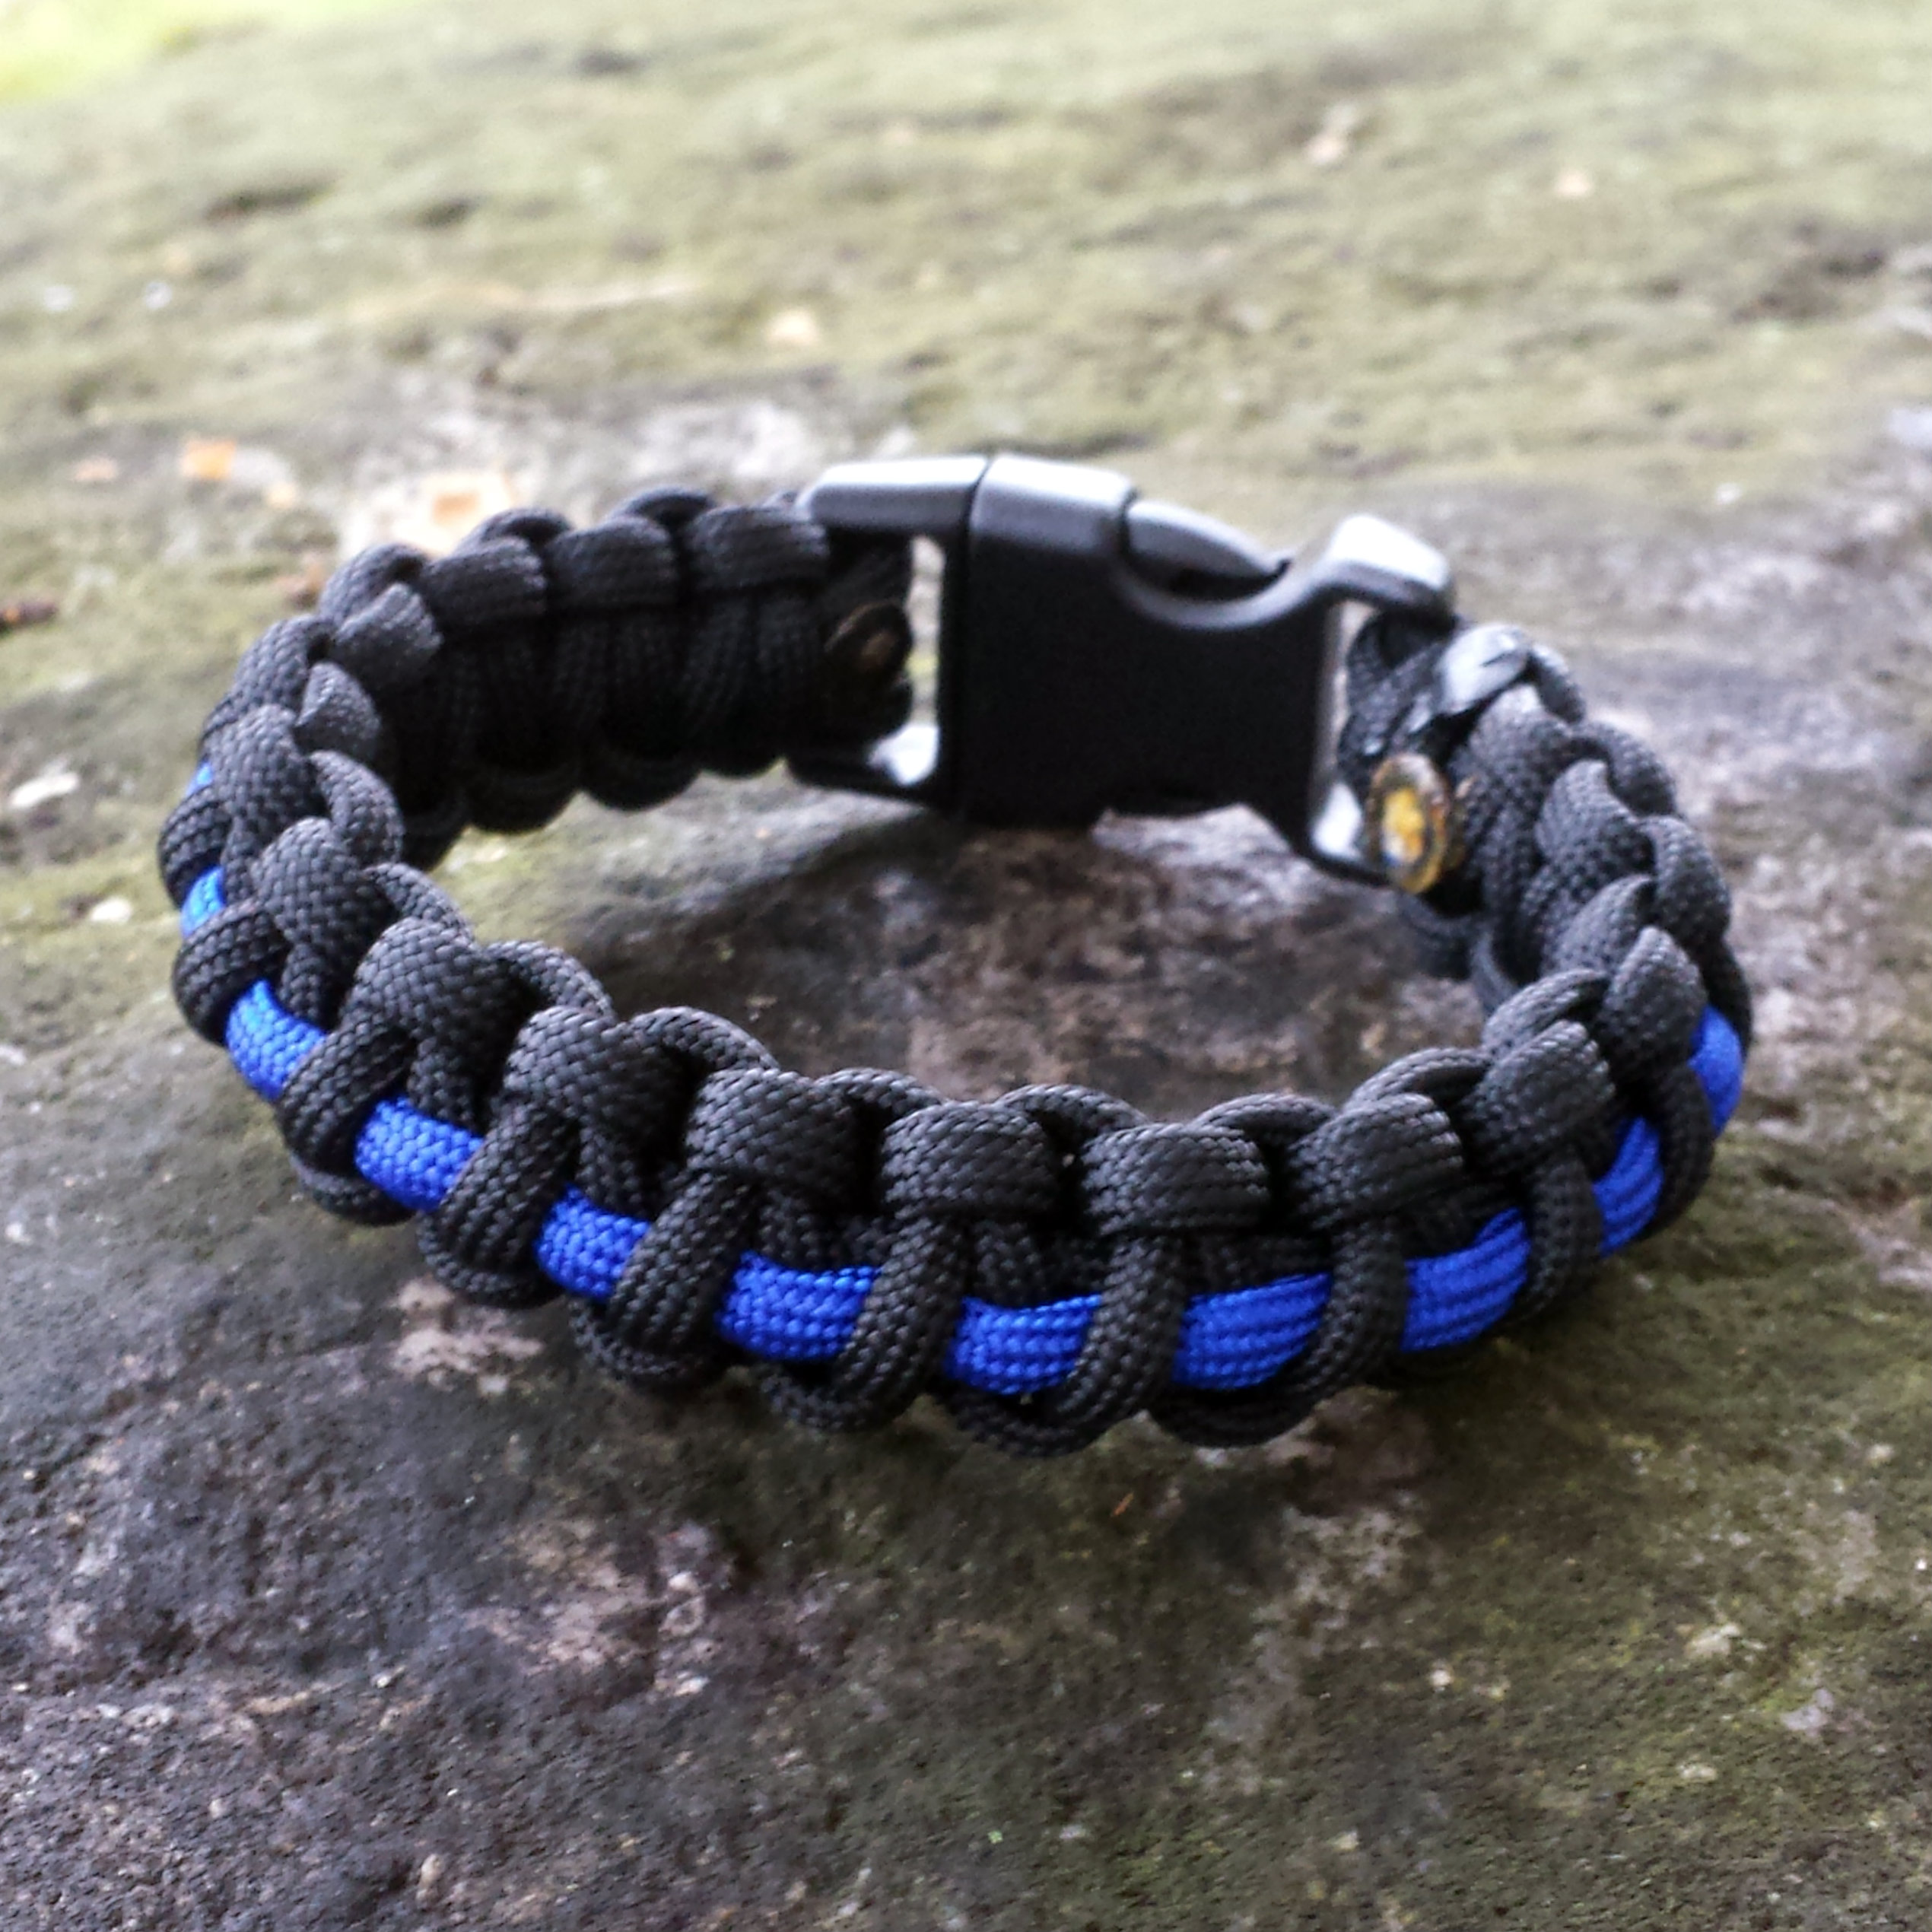 product paracord line instagram main blue thin bracelet on provide armor for body helps people talking